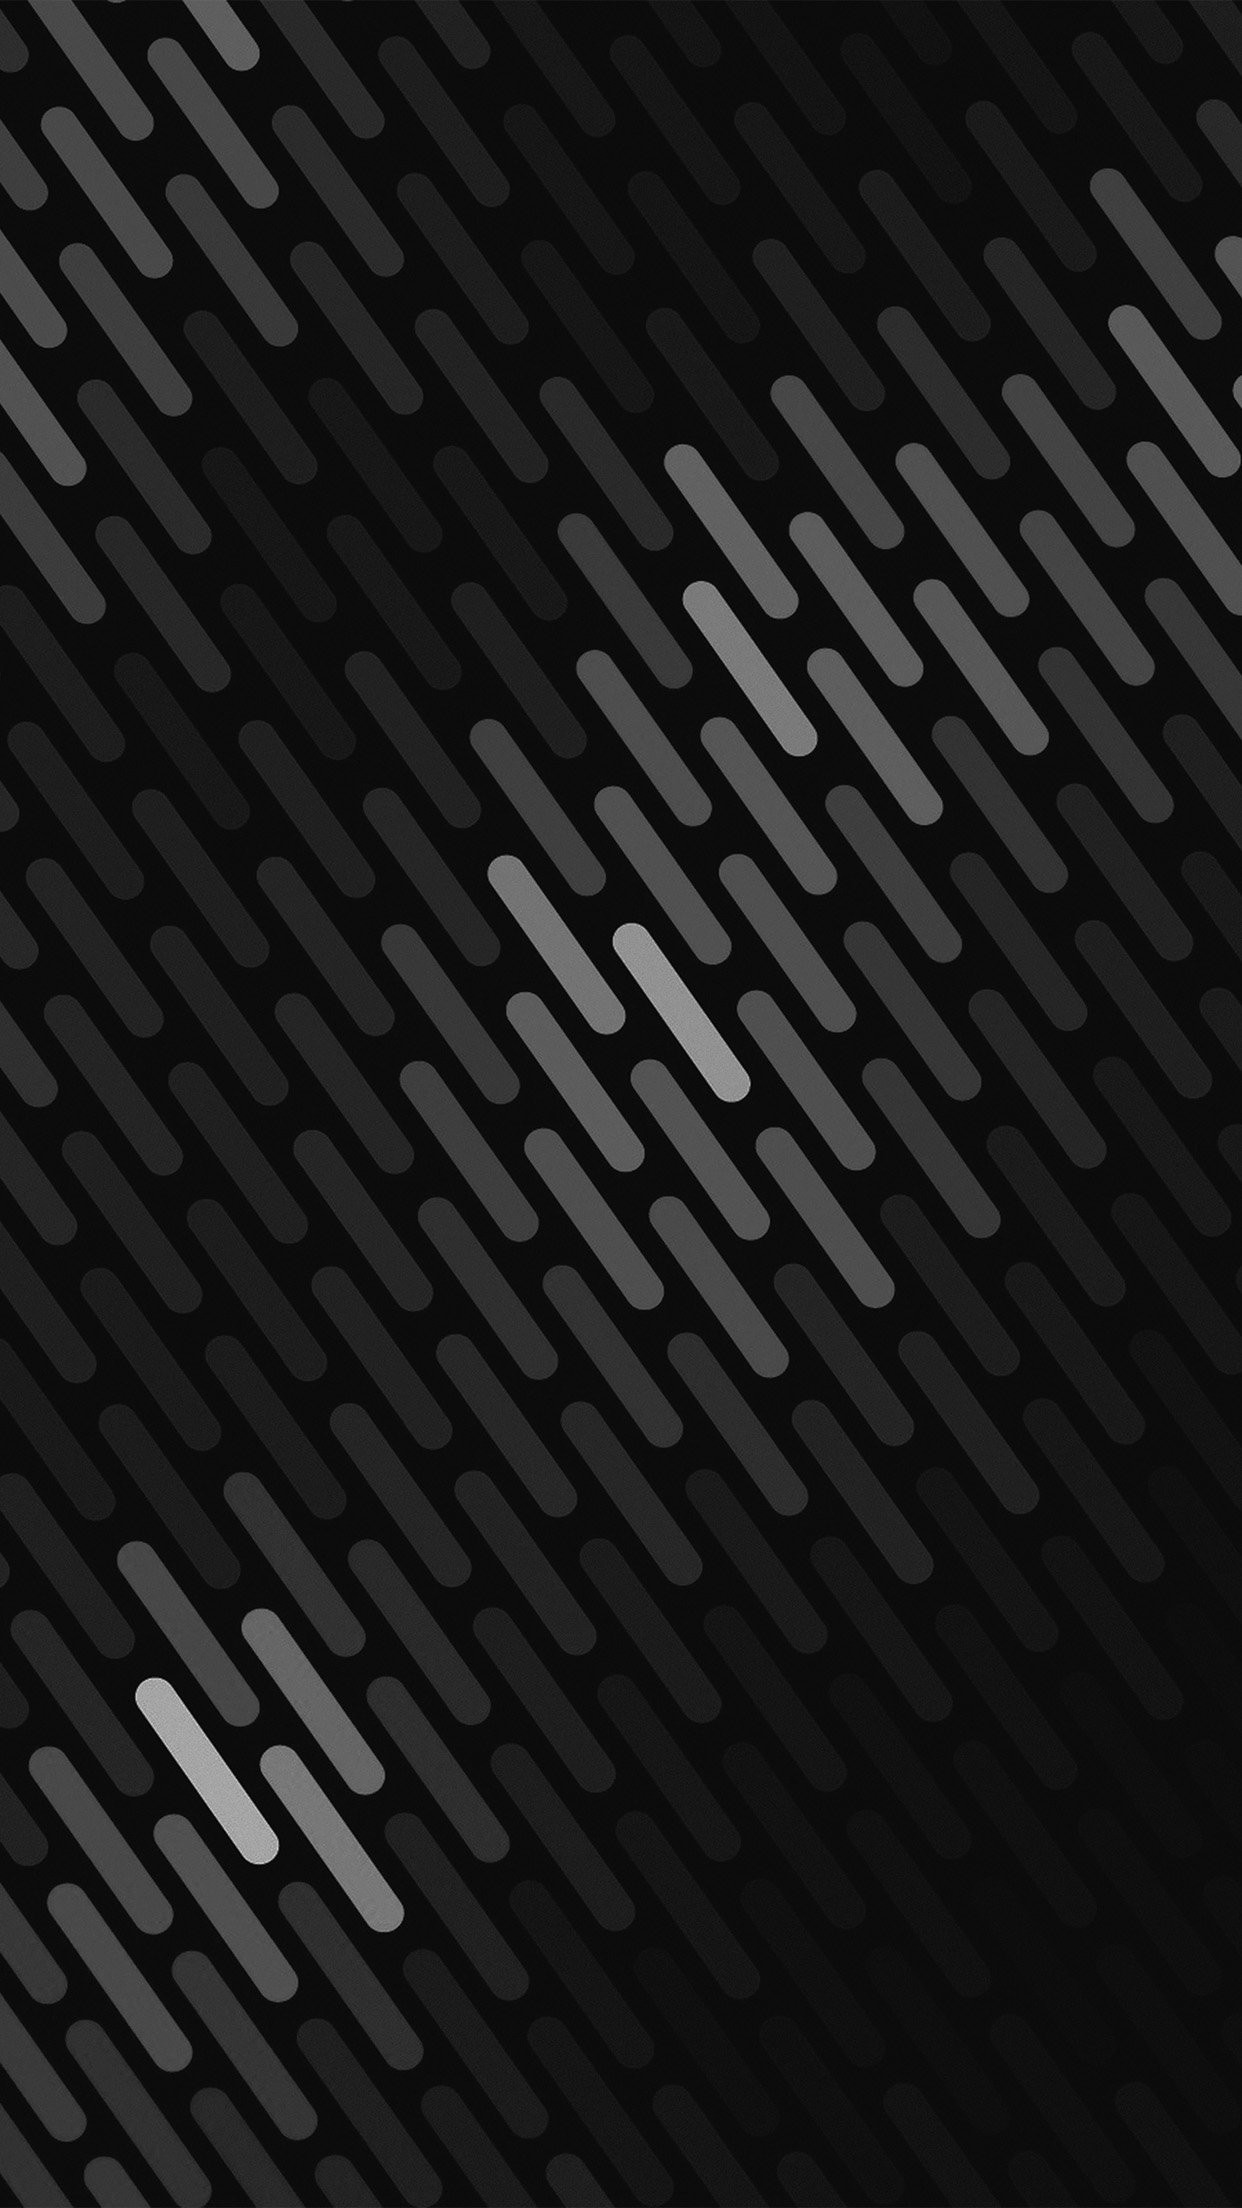 76 Black Abstract Wallpapers on WallpaperPlay 1242x2208